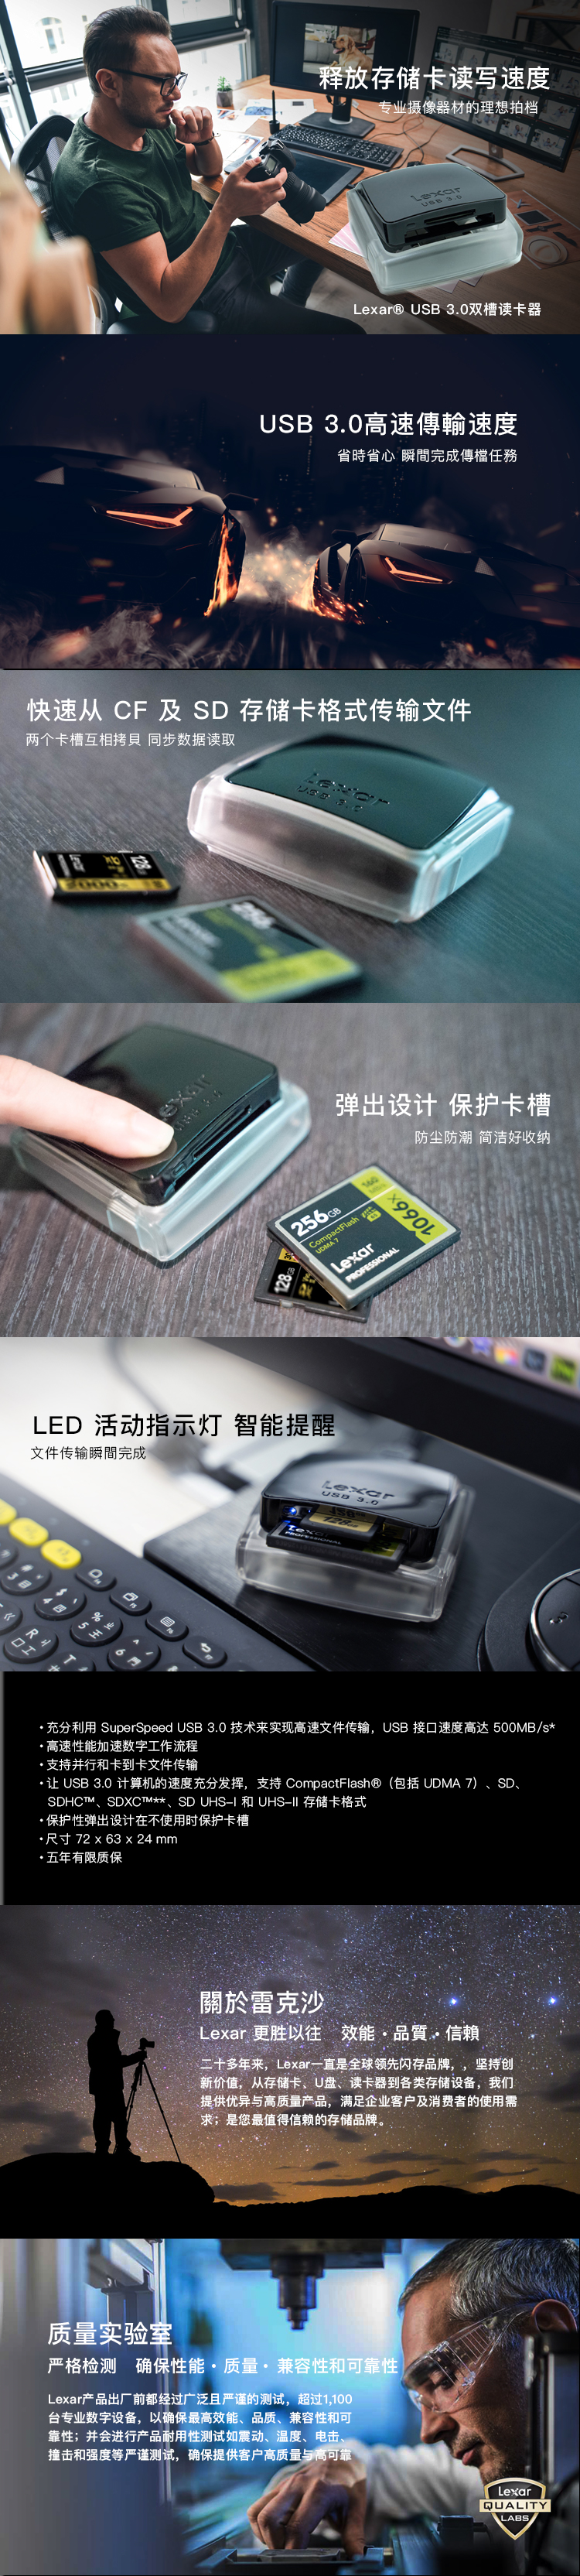 Professional USB 3.0 Dual Slot Reader